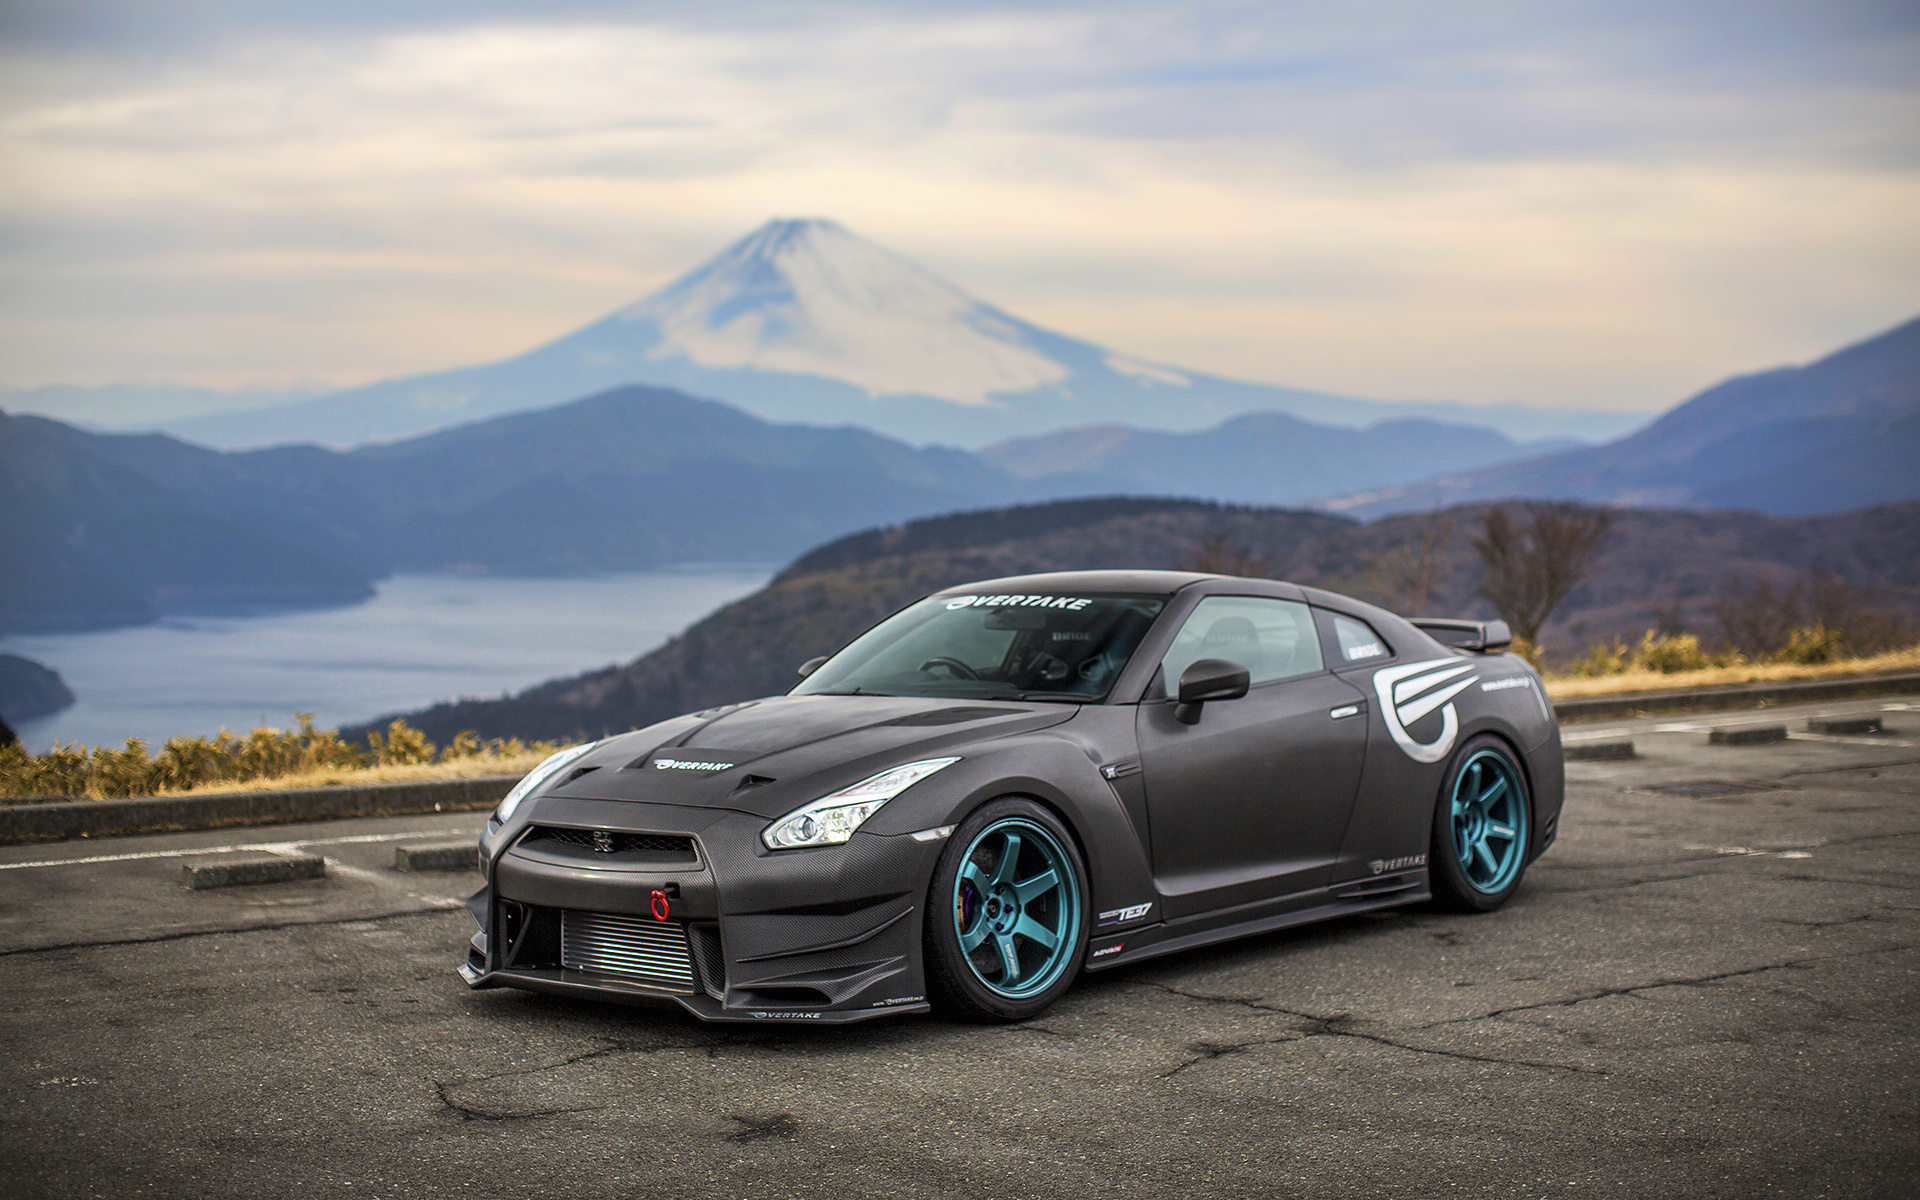 cars nissan gt r tuning wallpaper 119724 1920x1200px on. Black Bedroom Furniture Sets. Home Design Ideas